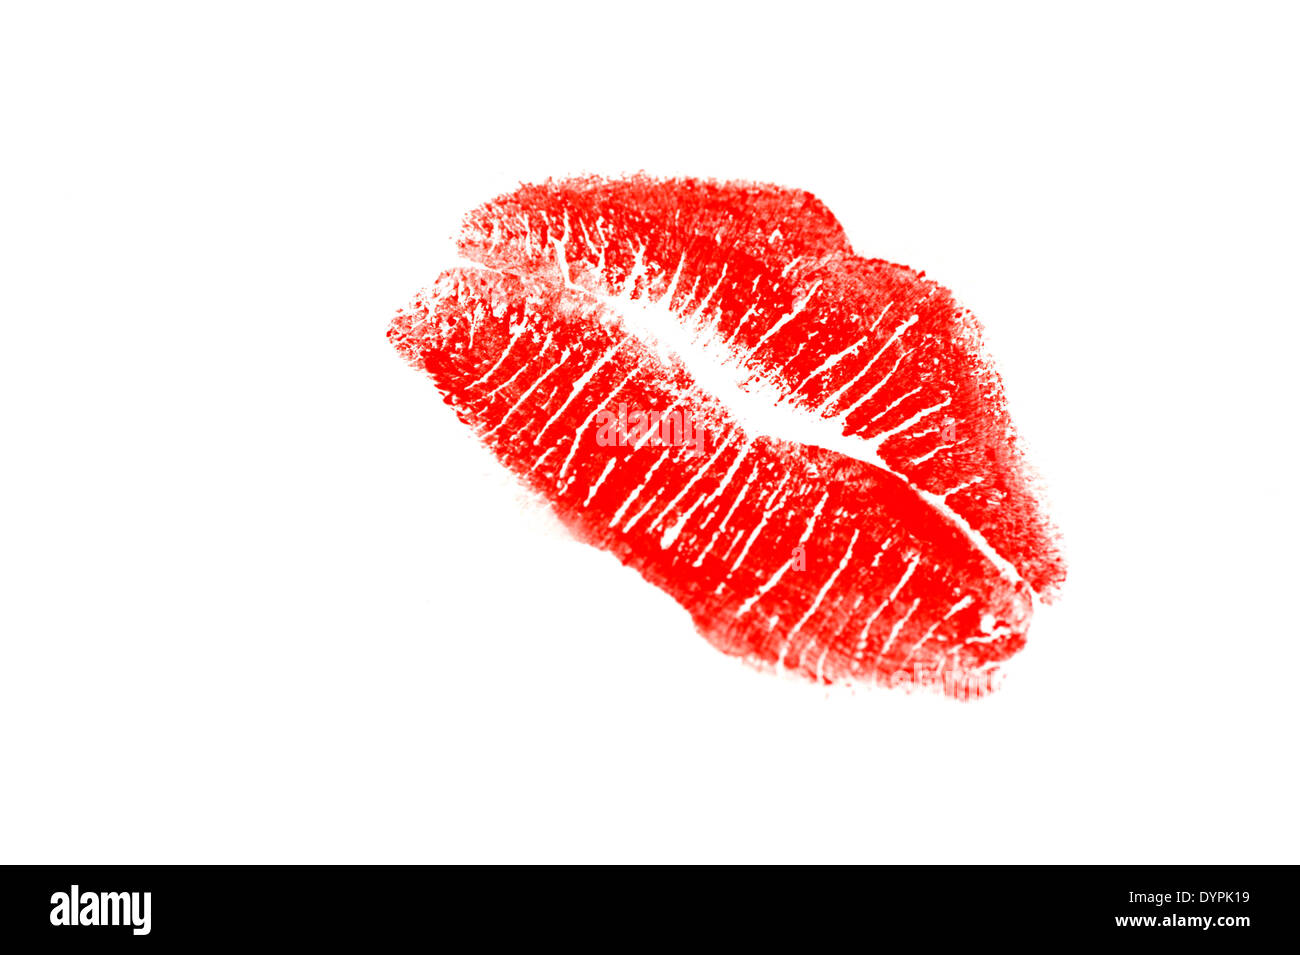 13451c14fa9b Red lipstick kiss on a white background - Stock Image